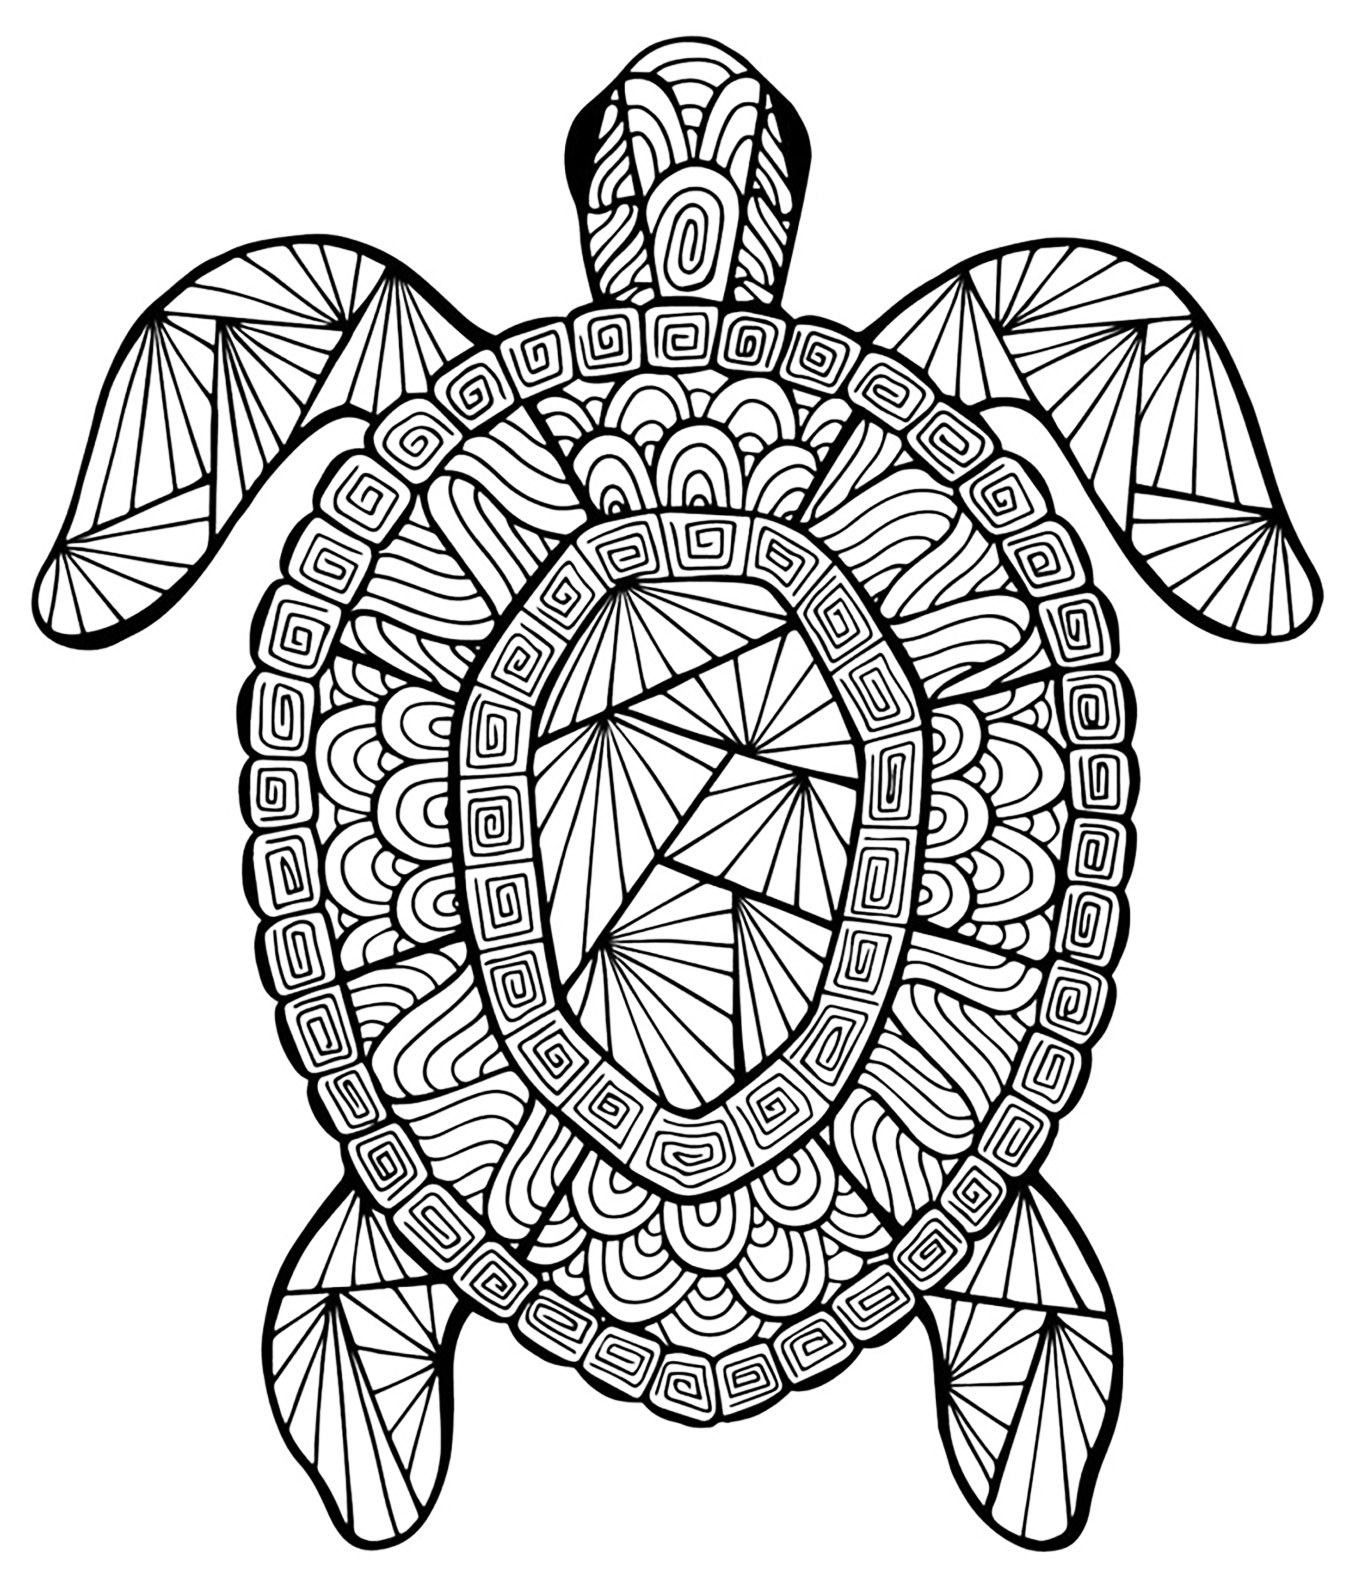 Color this incredible turtle